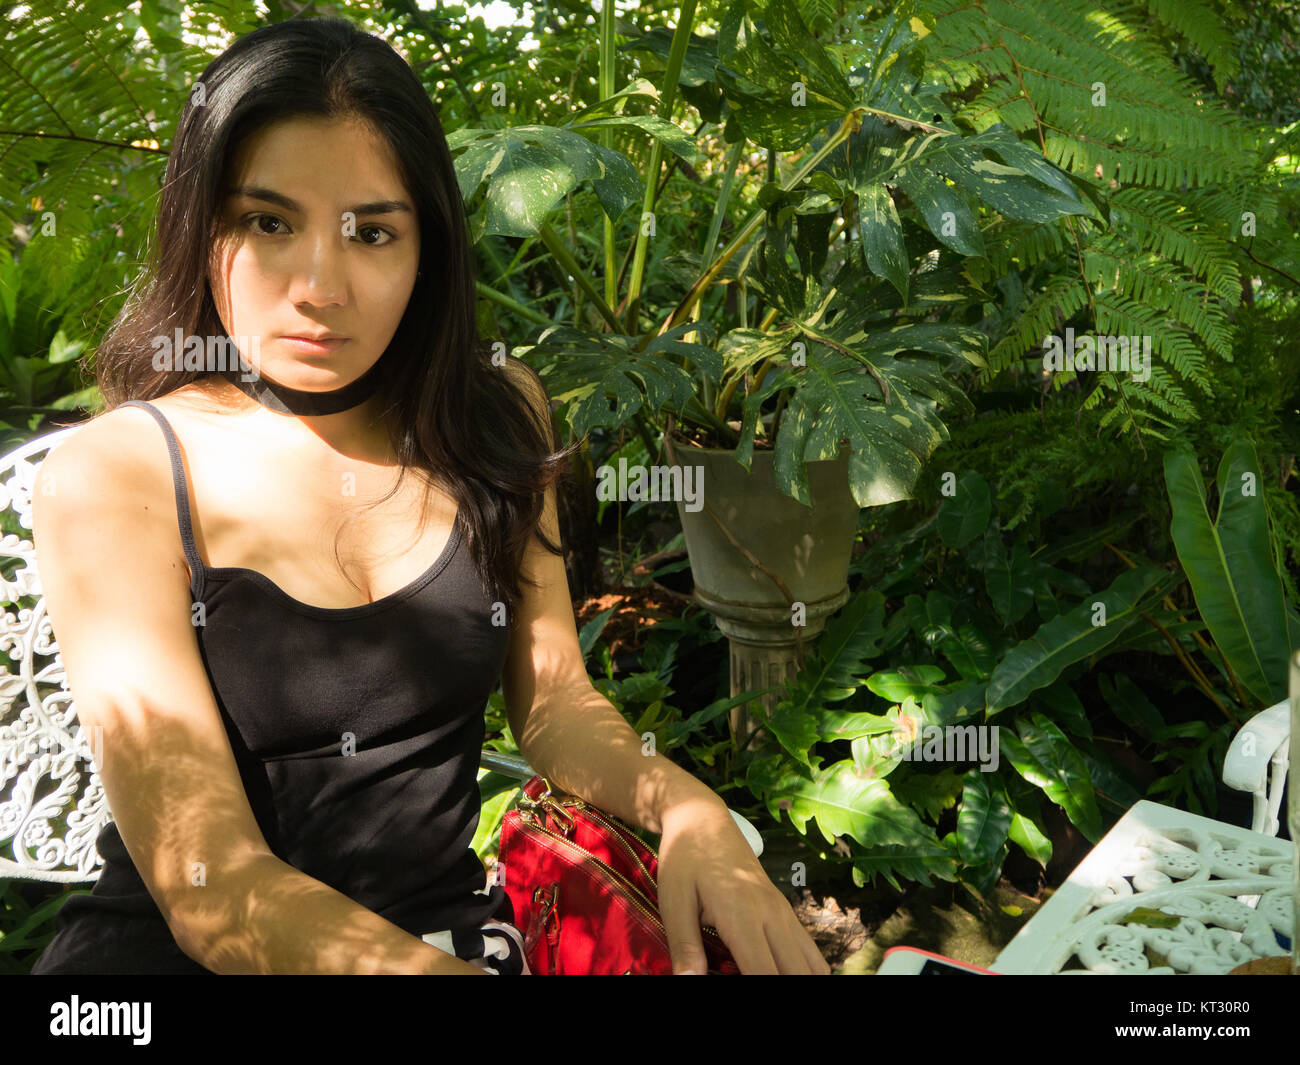 Asian woman sitting on the wooden chair in the garden - Stock Image